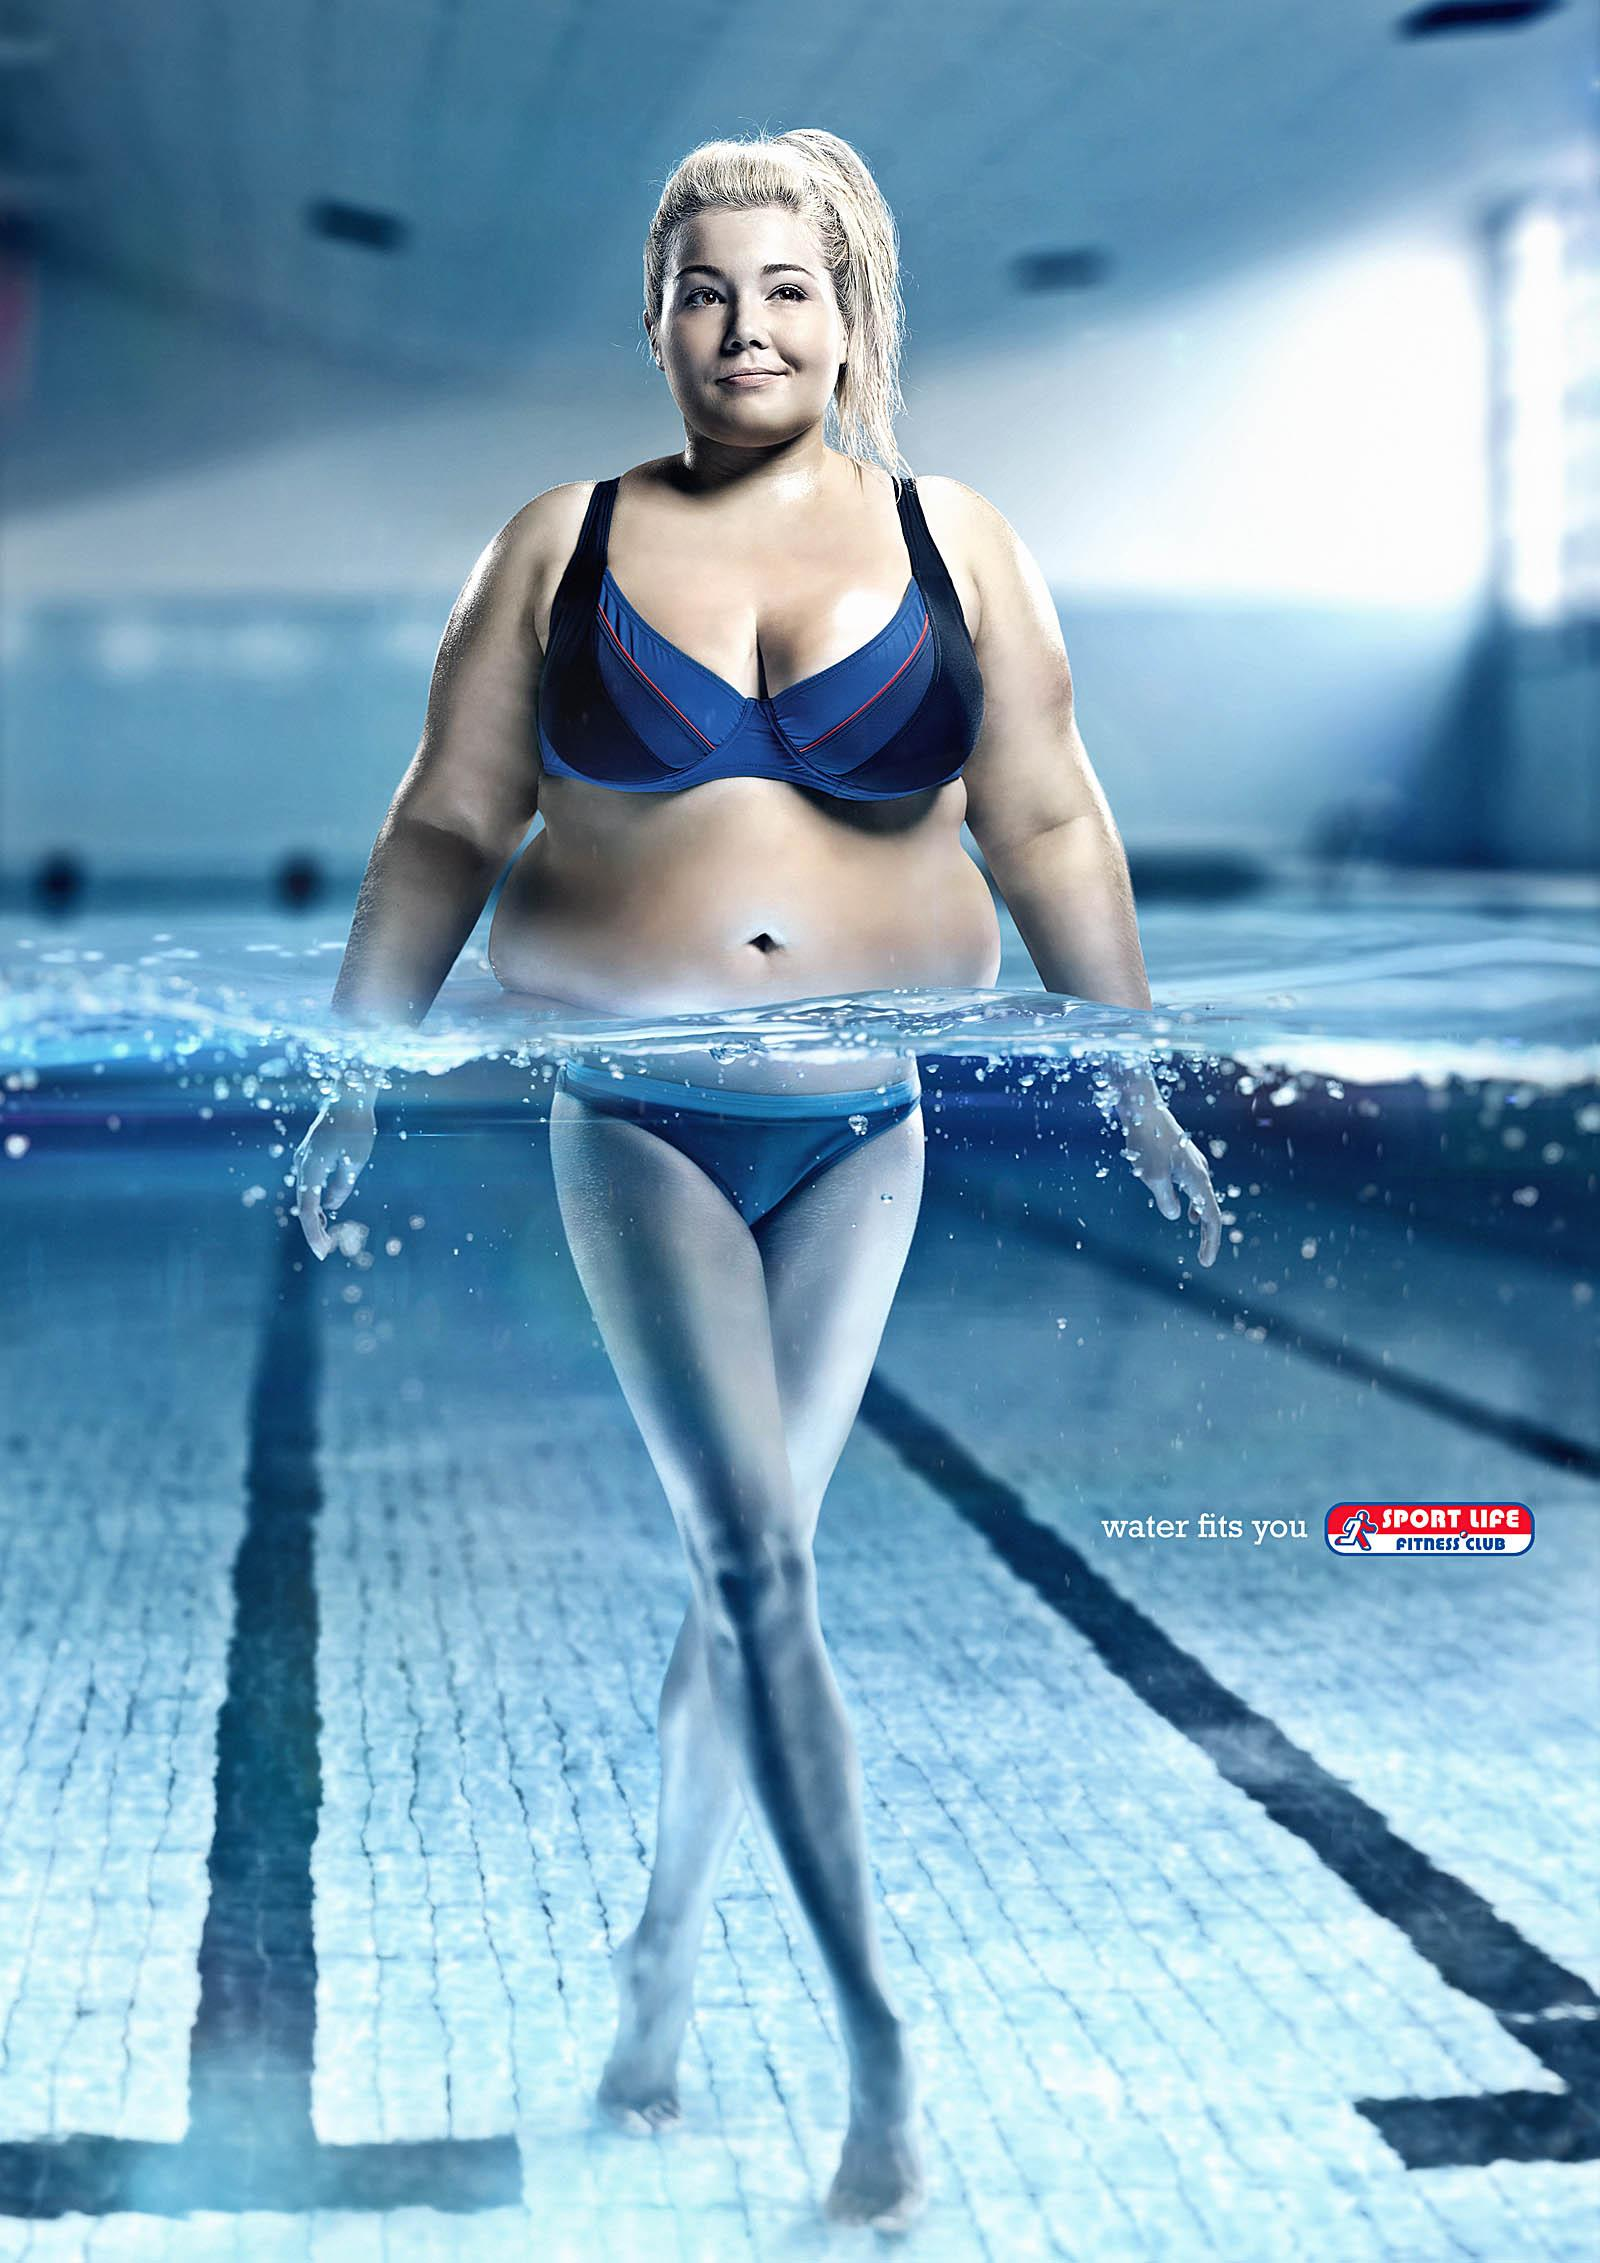 Sportlife Print Ad -  Water fits you, Lady